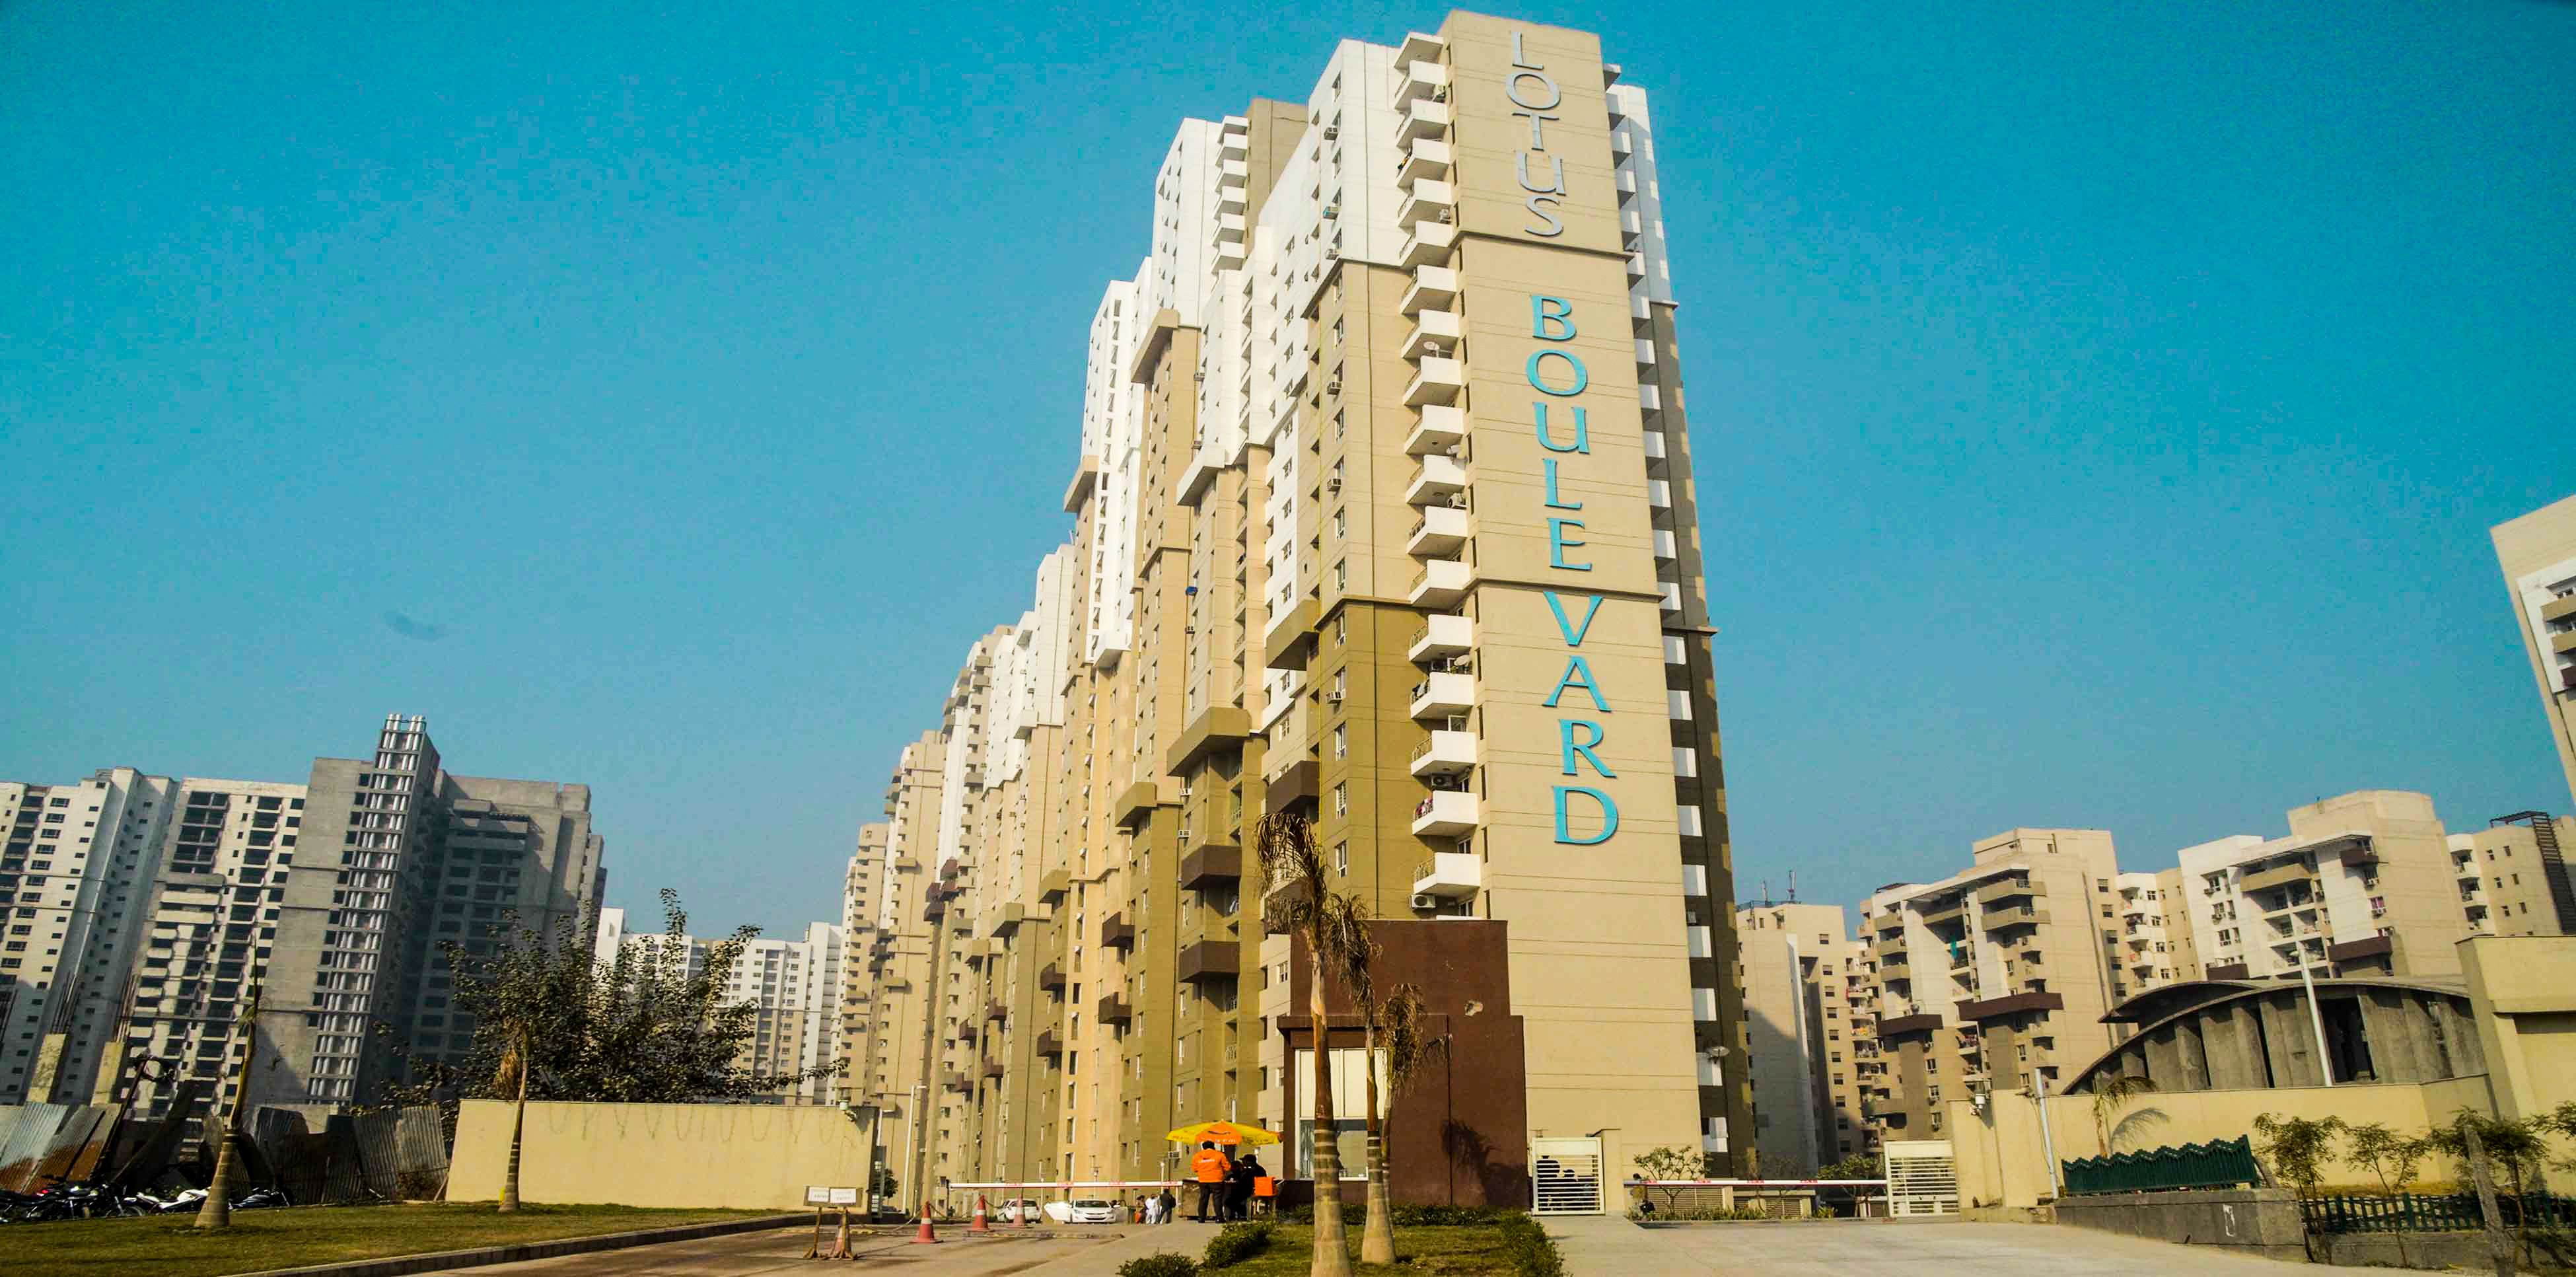 NCLT orders insolvency proceedings against Noida based Three C Projects